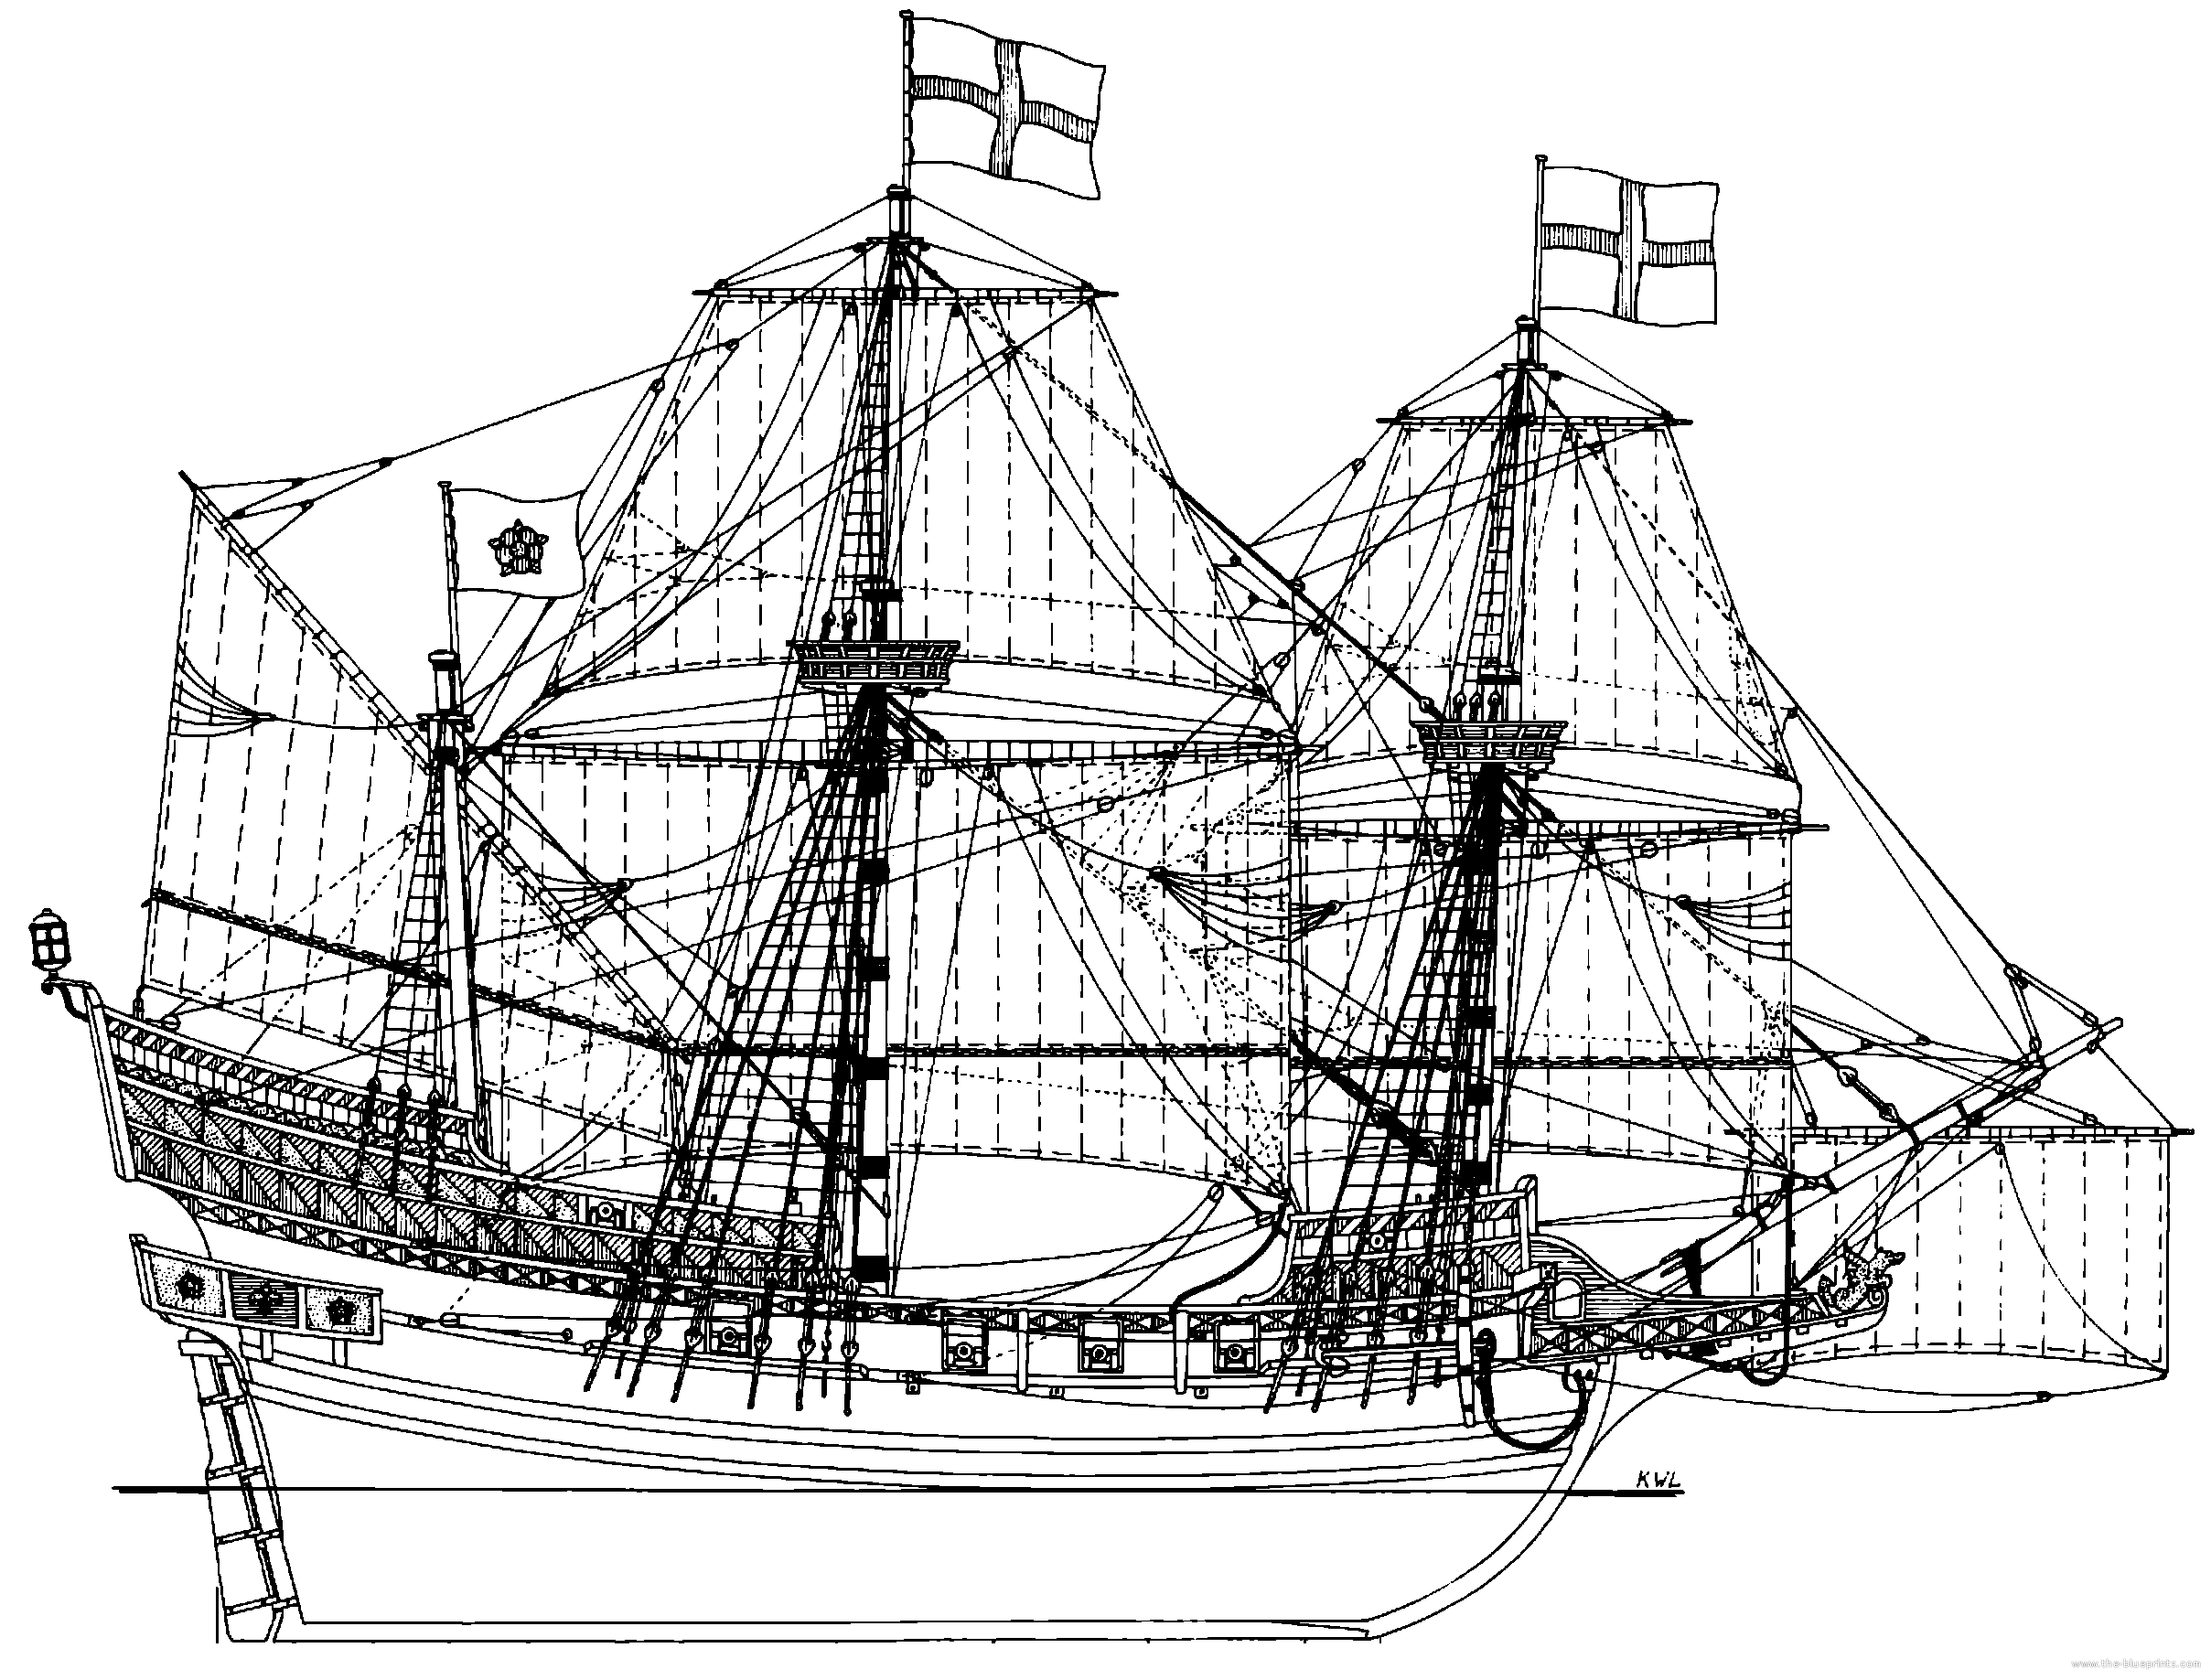 english-galleon-1588.png (2417×1837)